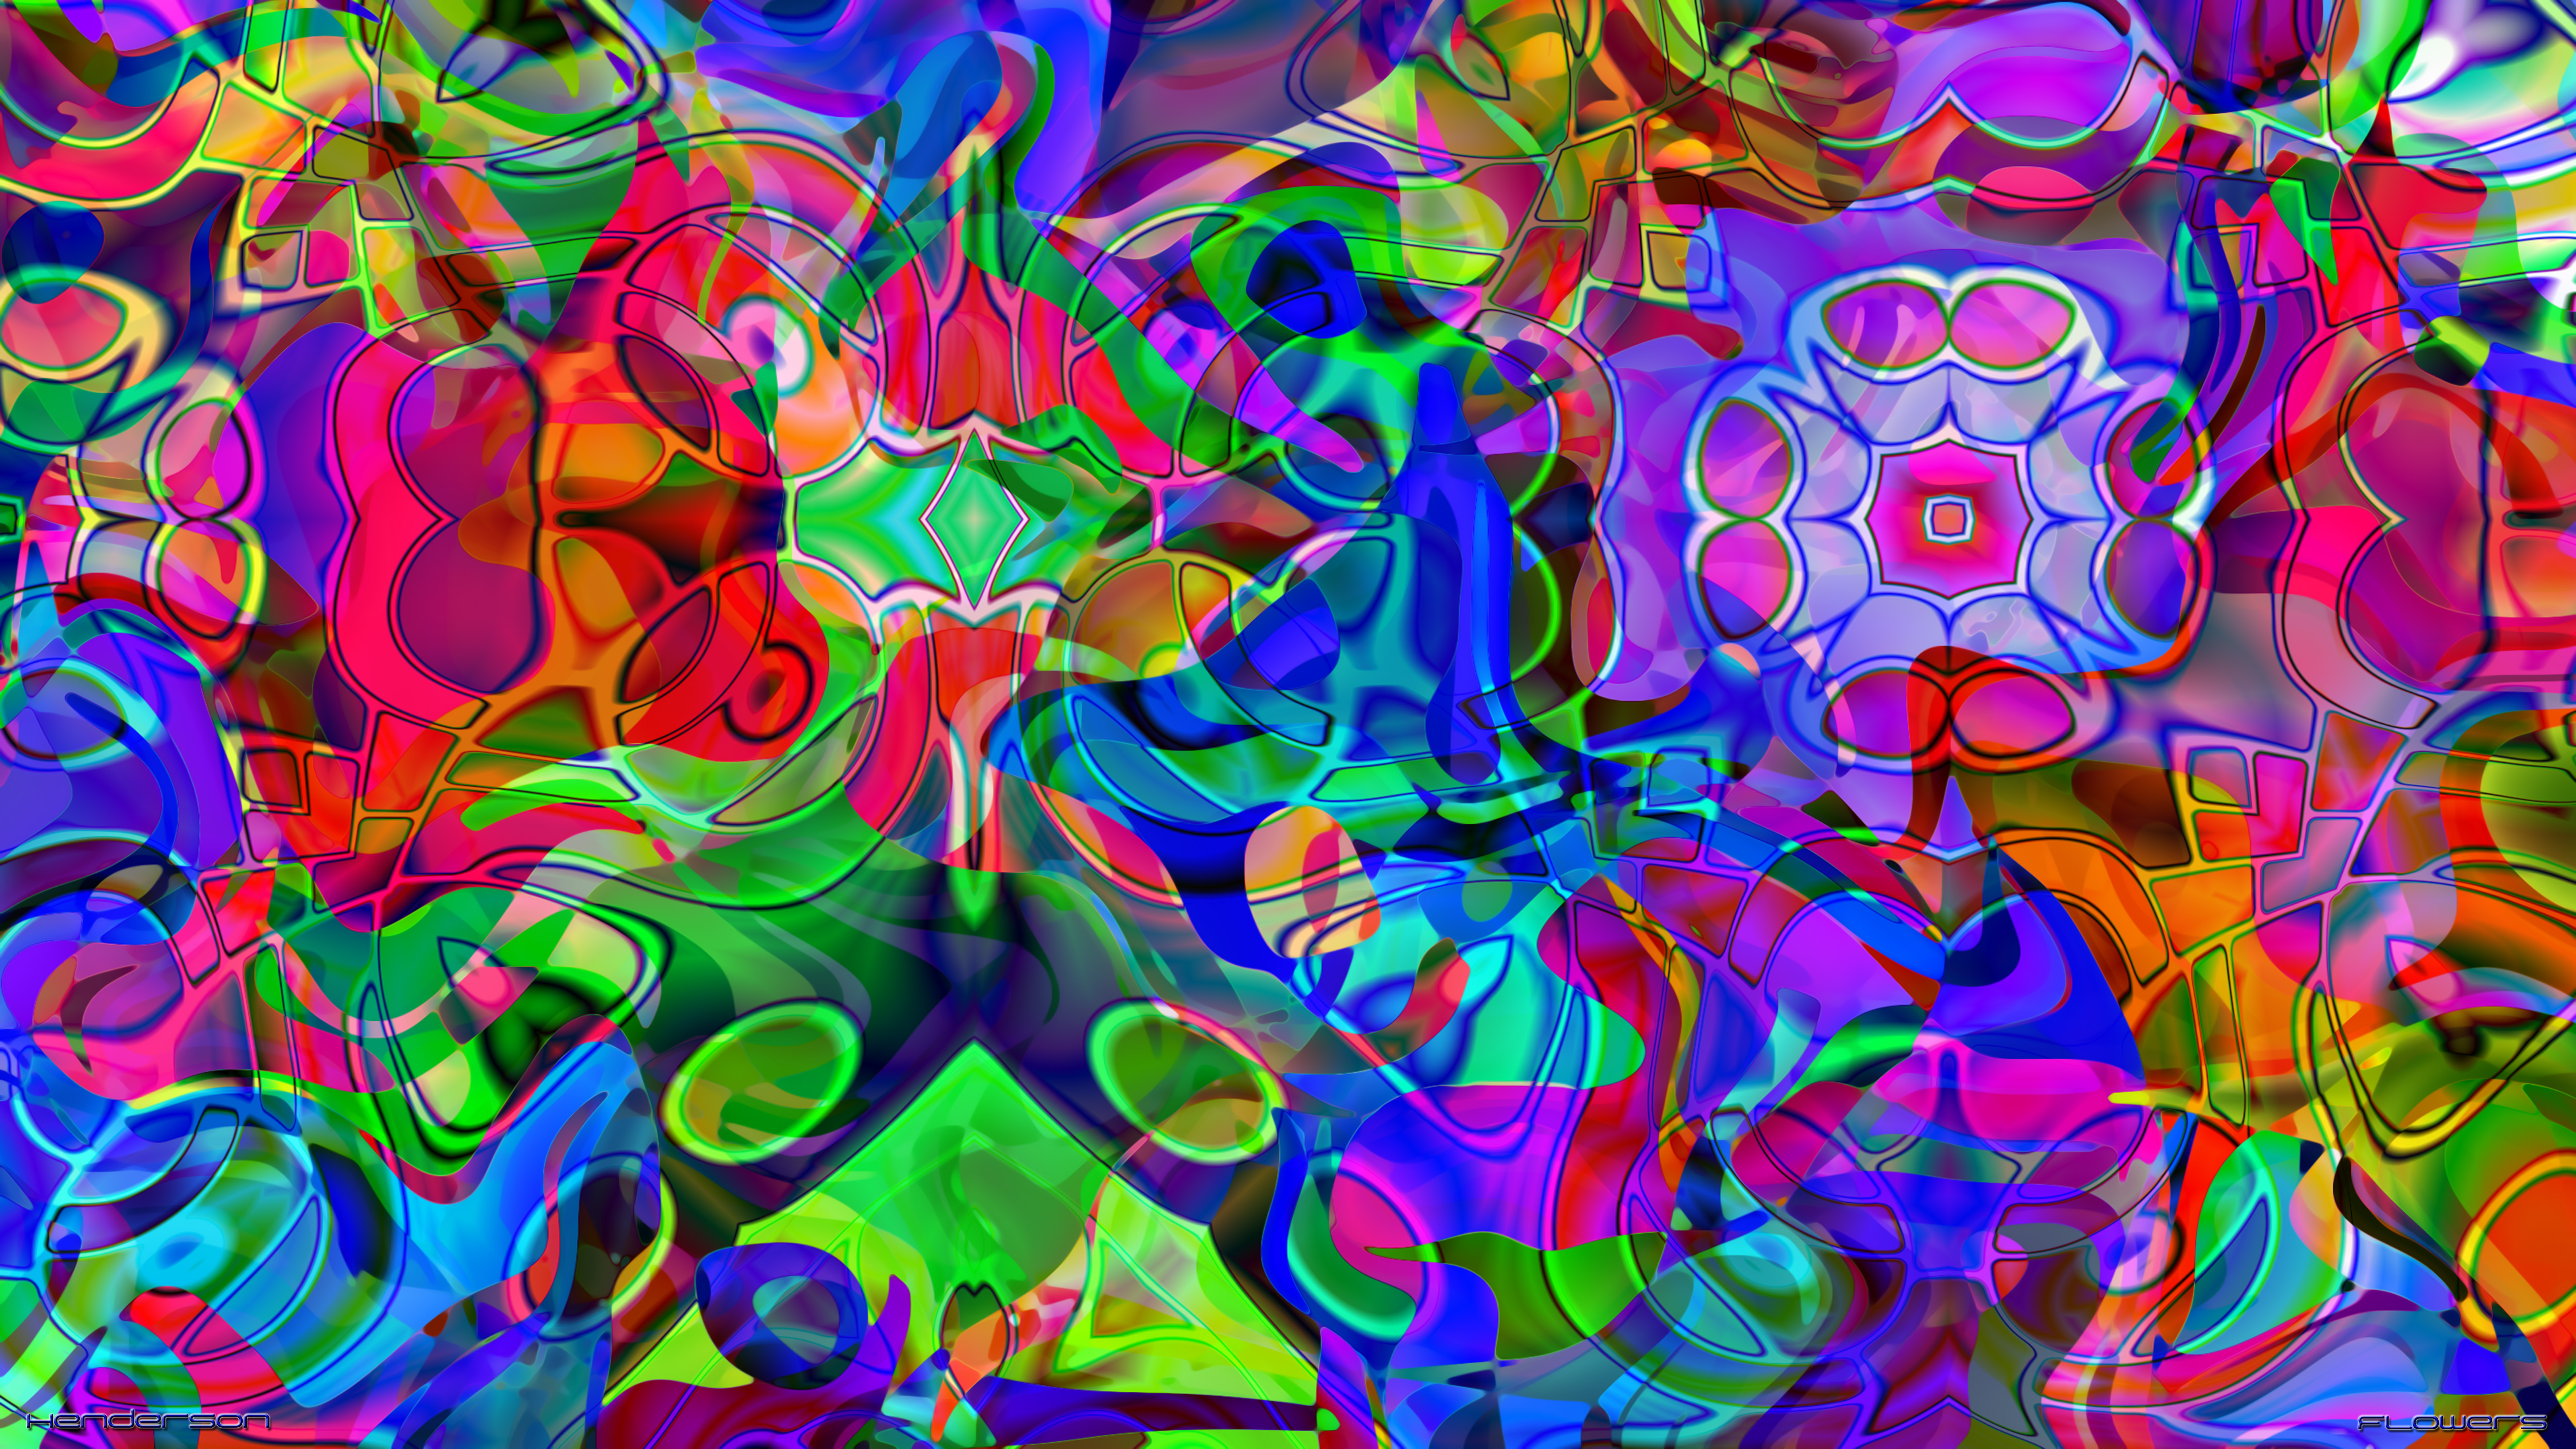 12 modern art flower graphics images abstract flower art for Abstract art flowers paintings